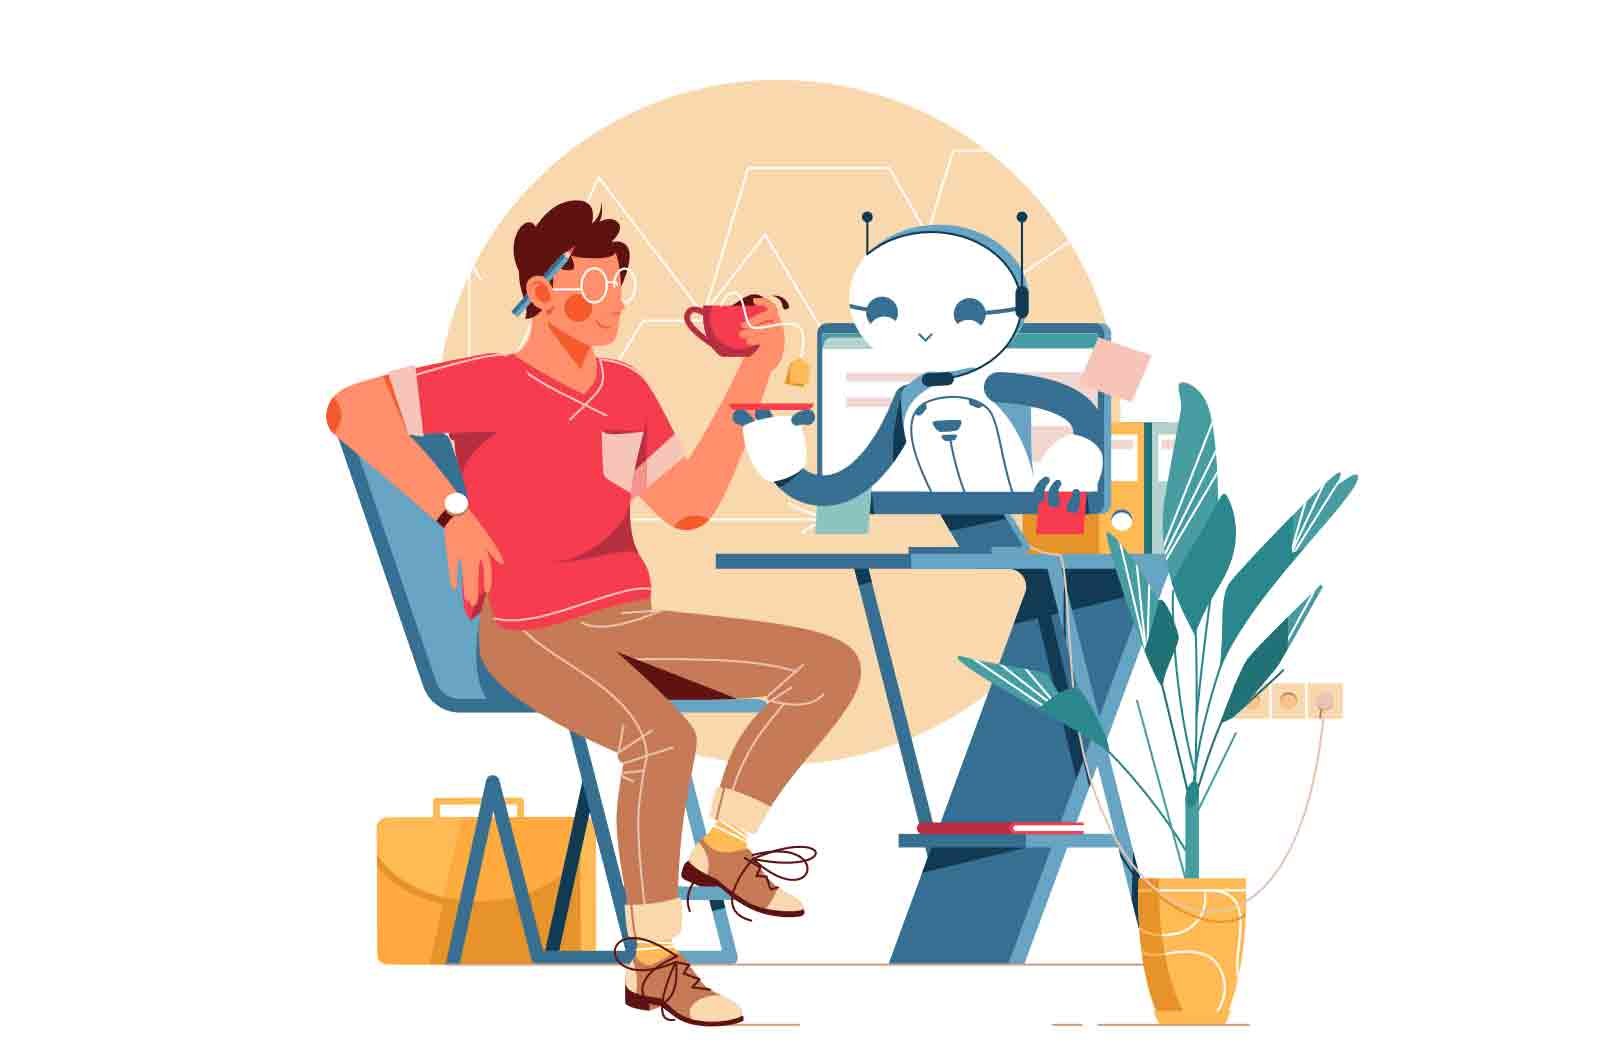 Robot helps man Animation. Man sitting at workplace and drinking tea. Bot helping guy and holding saucer. Lottie (json), After Effects, Mp4